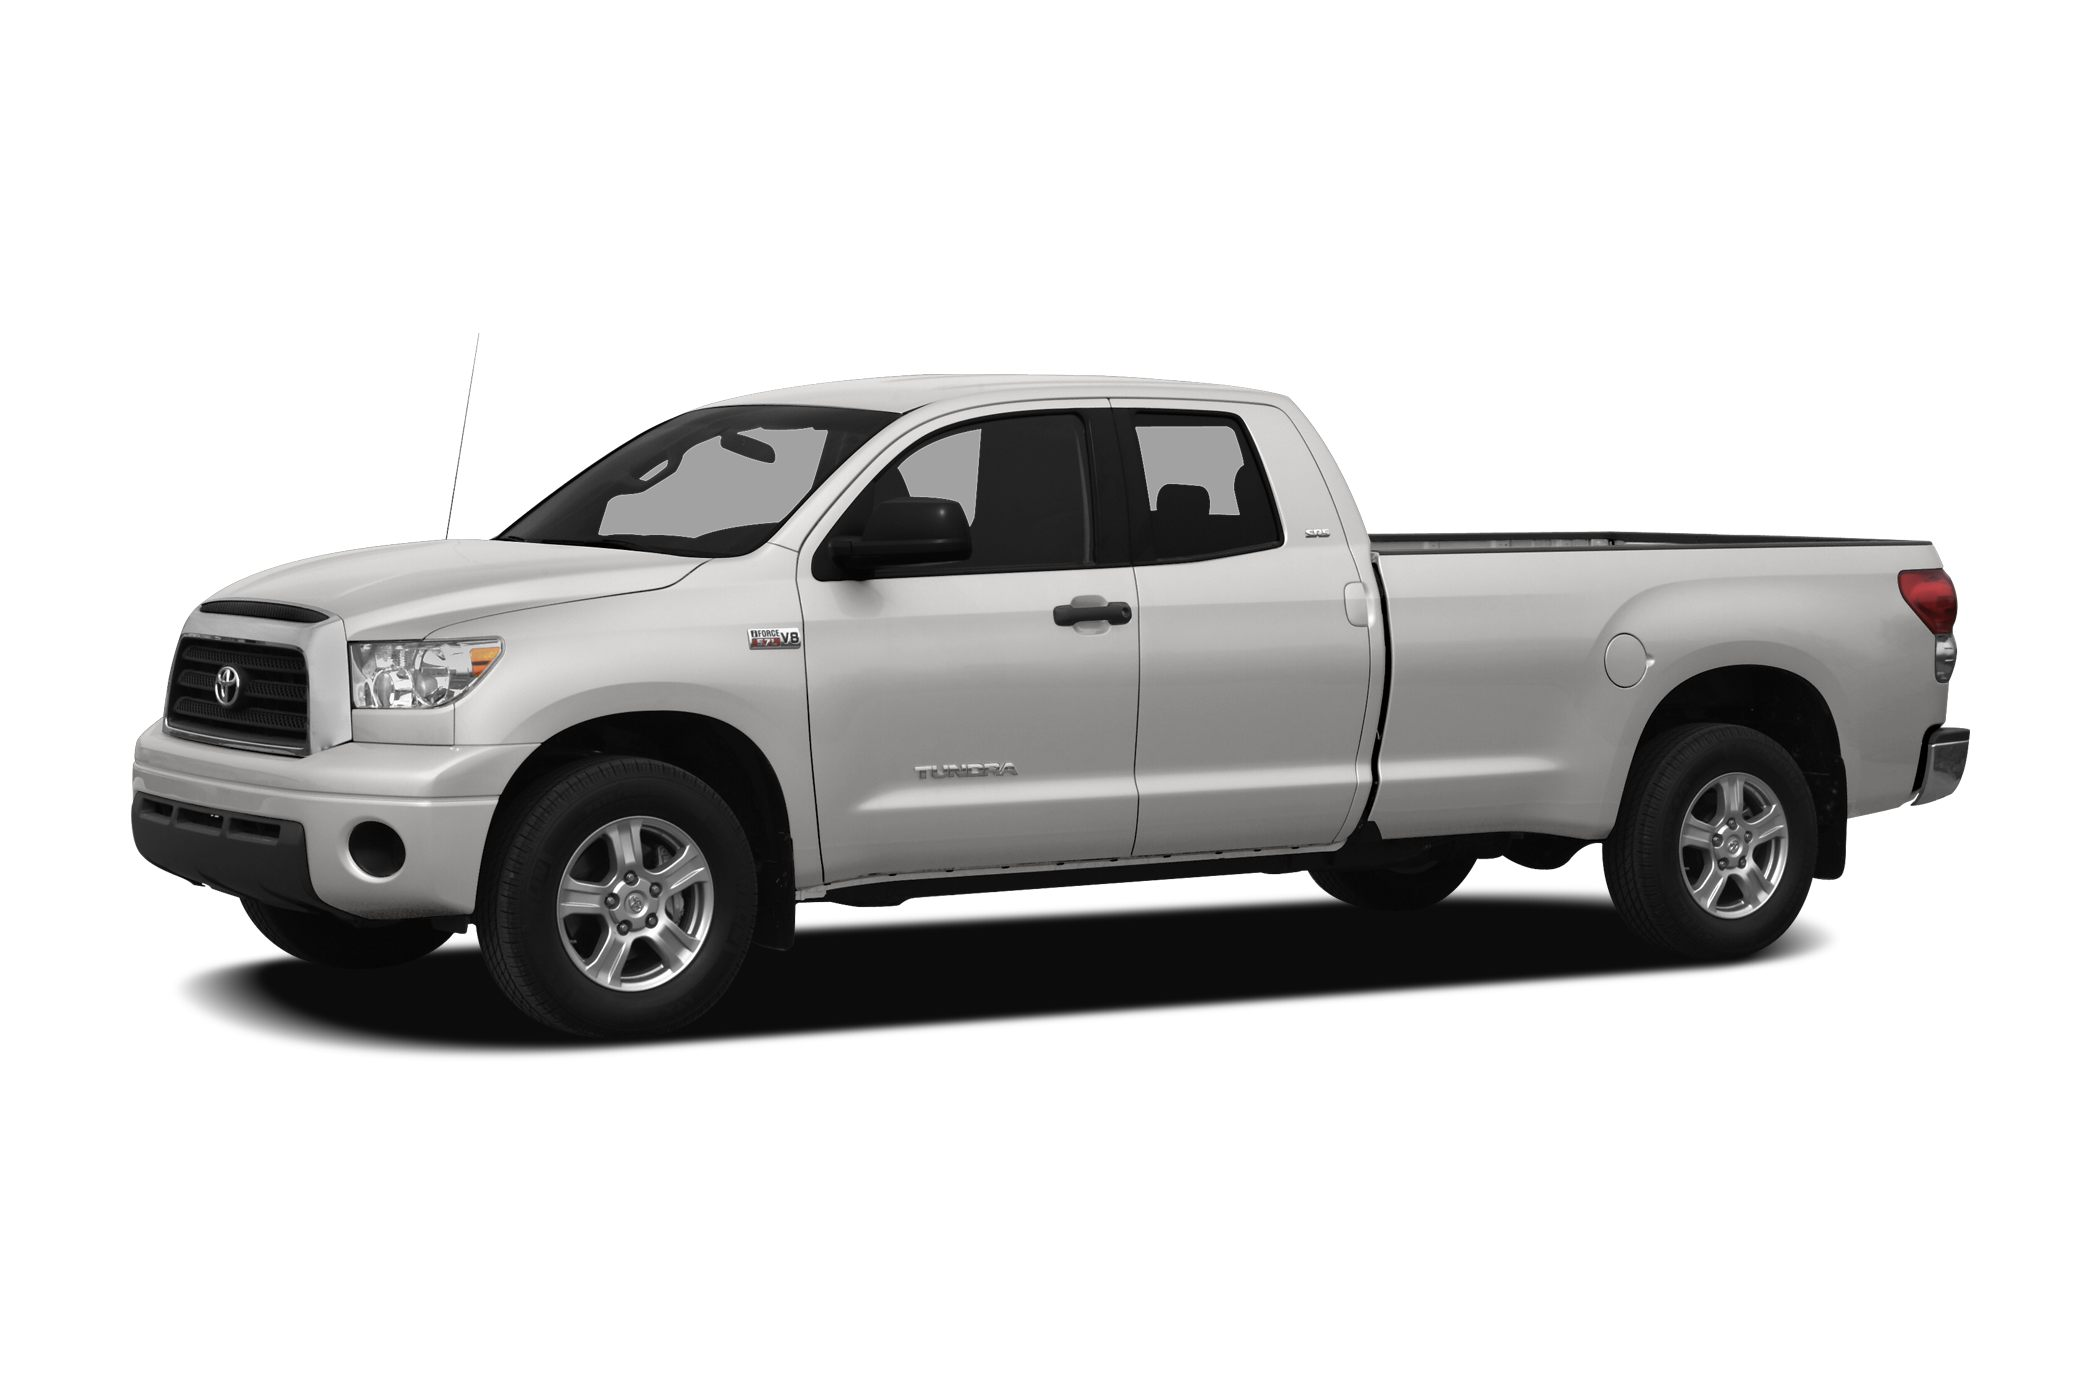 2007 Toyota Tundra SR5 ITS OUR 50TH ANNIVERSARY HERE AT MARTYS AND TO CELEBRATE WERE OFFERING TH